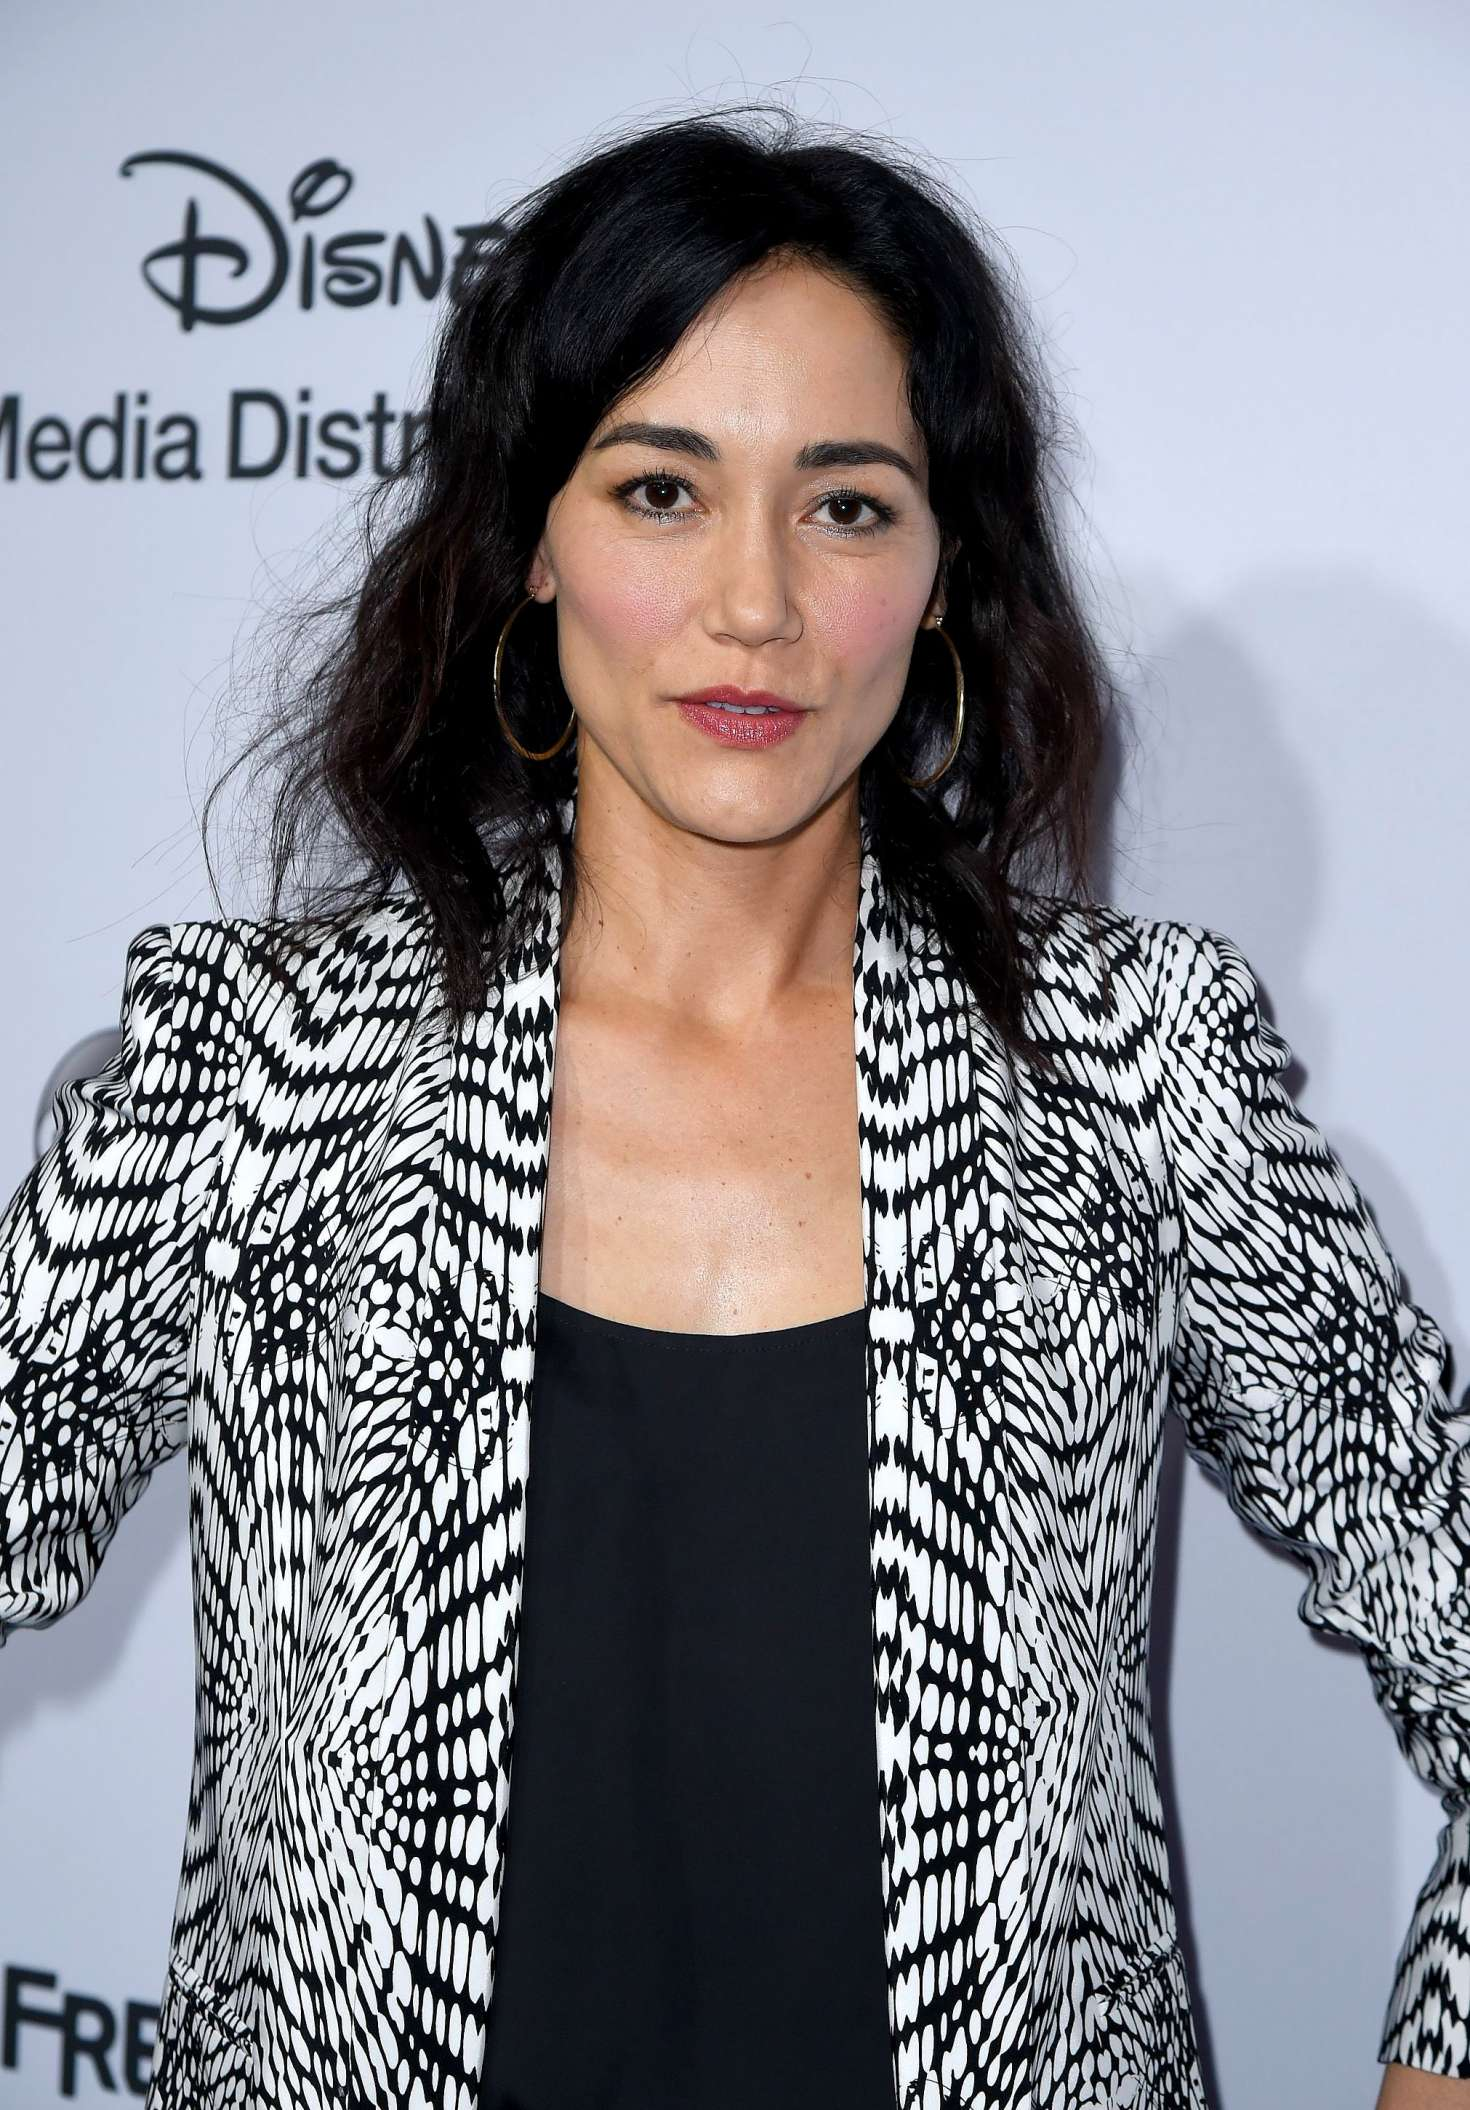 Sandrine Holt nudes (66 photos), Ass, Is a cute, Boobs, butt 2017